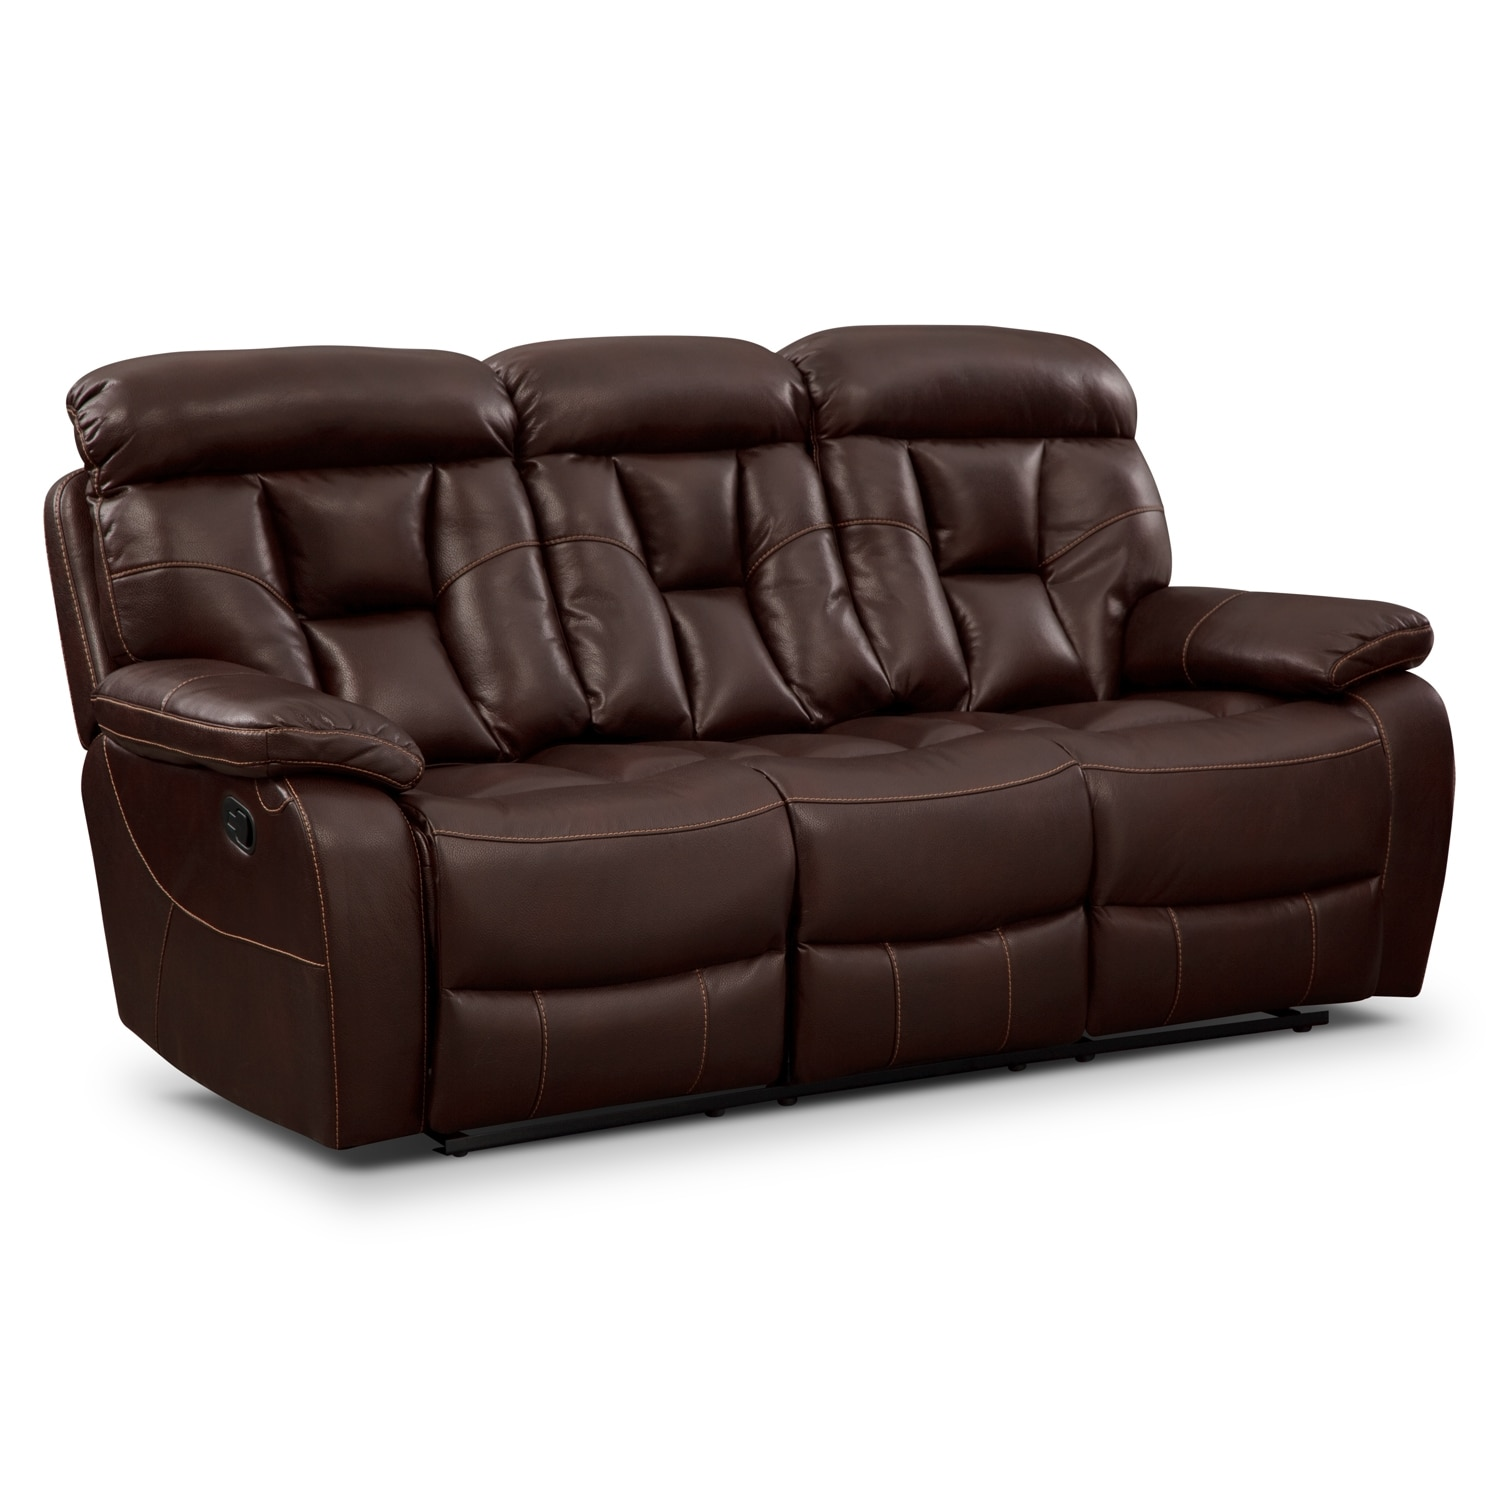 Dakota Reclining Sofa Java